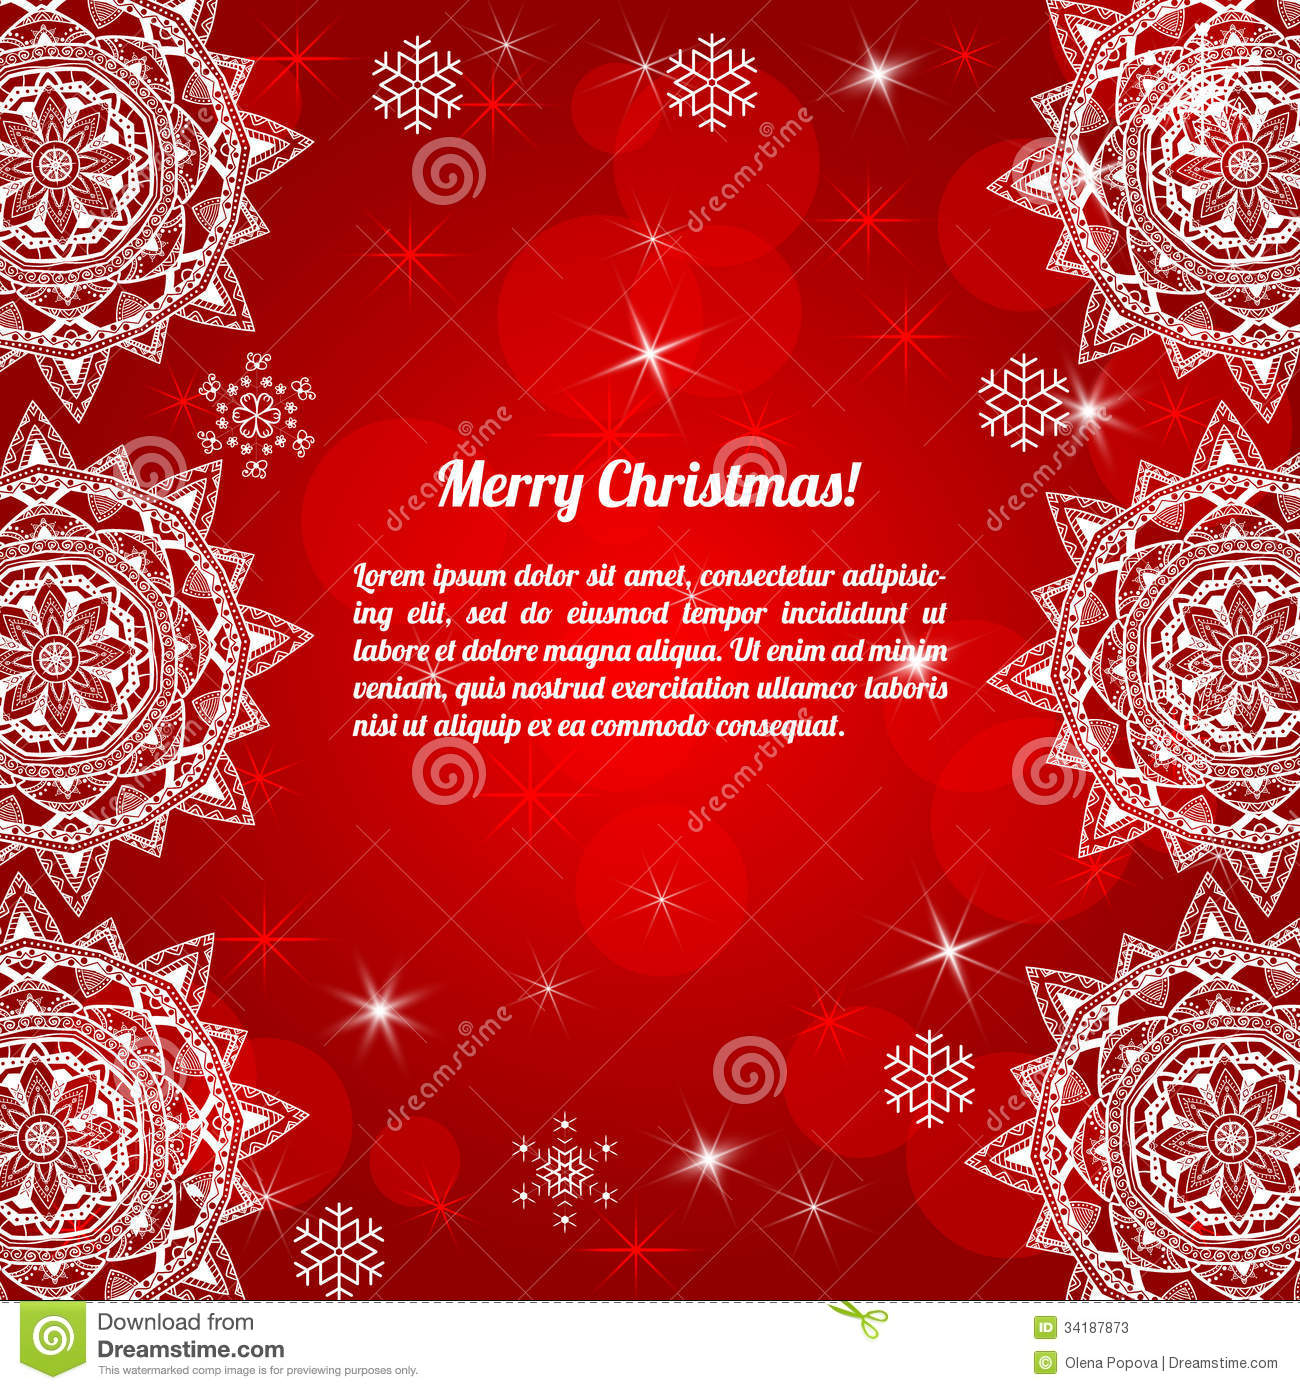 Invitation Christmas Card With Abstract Snowflakes Stock Vector ...